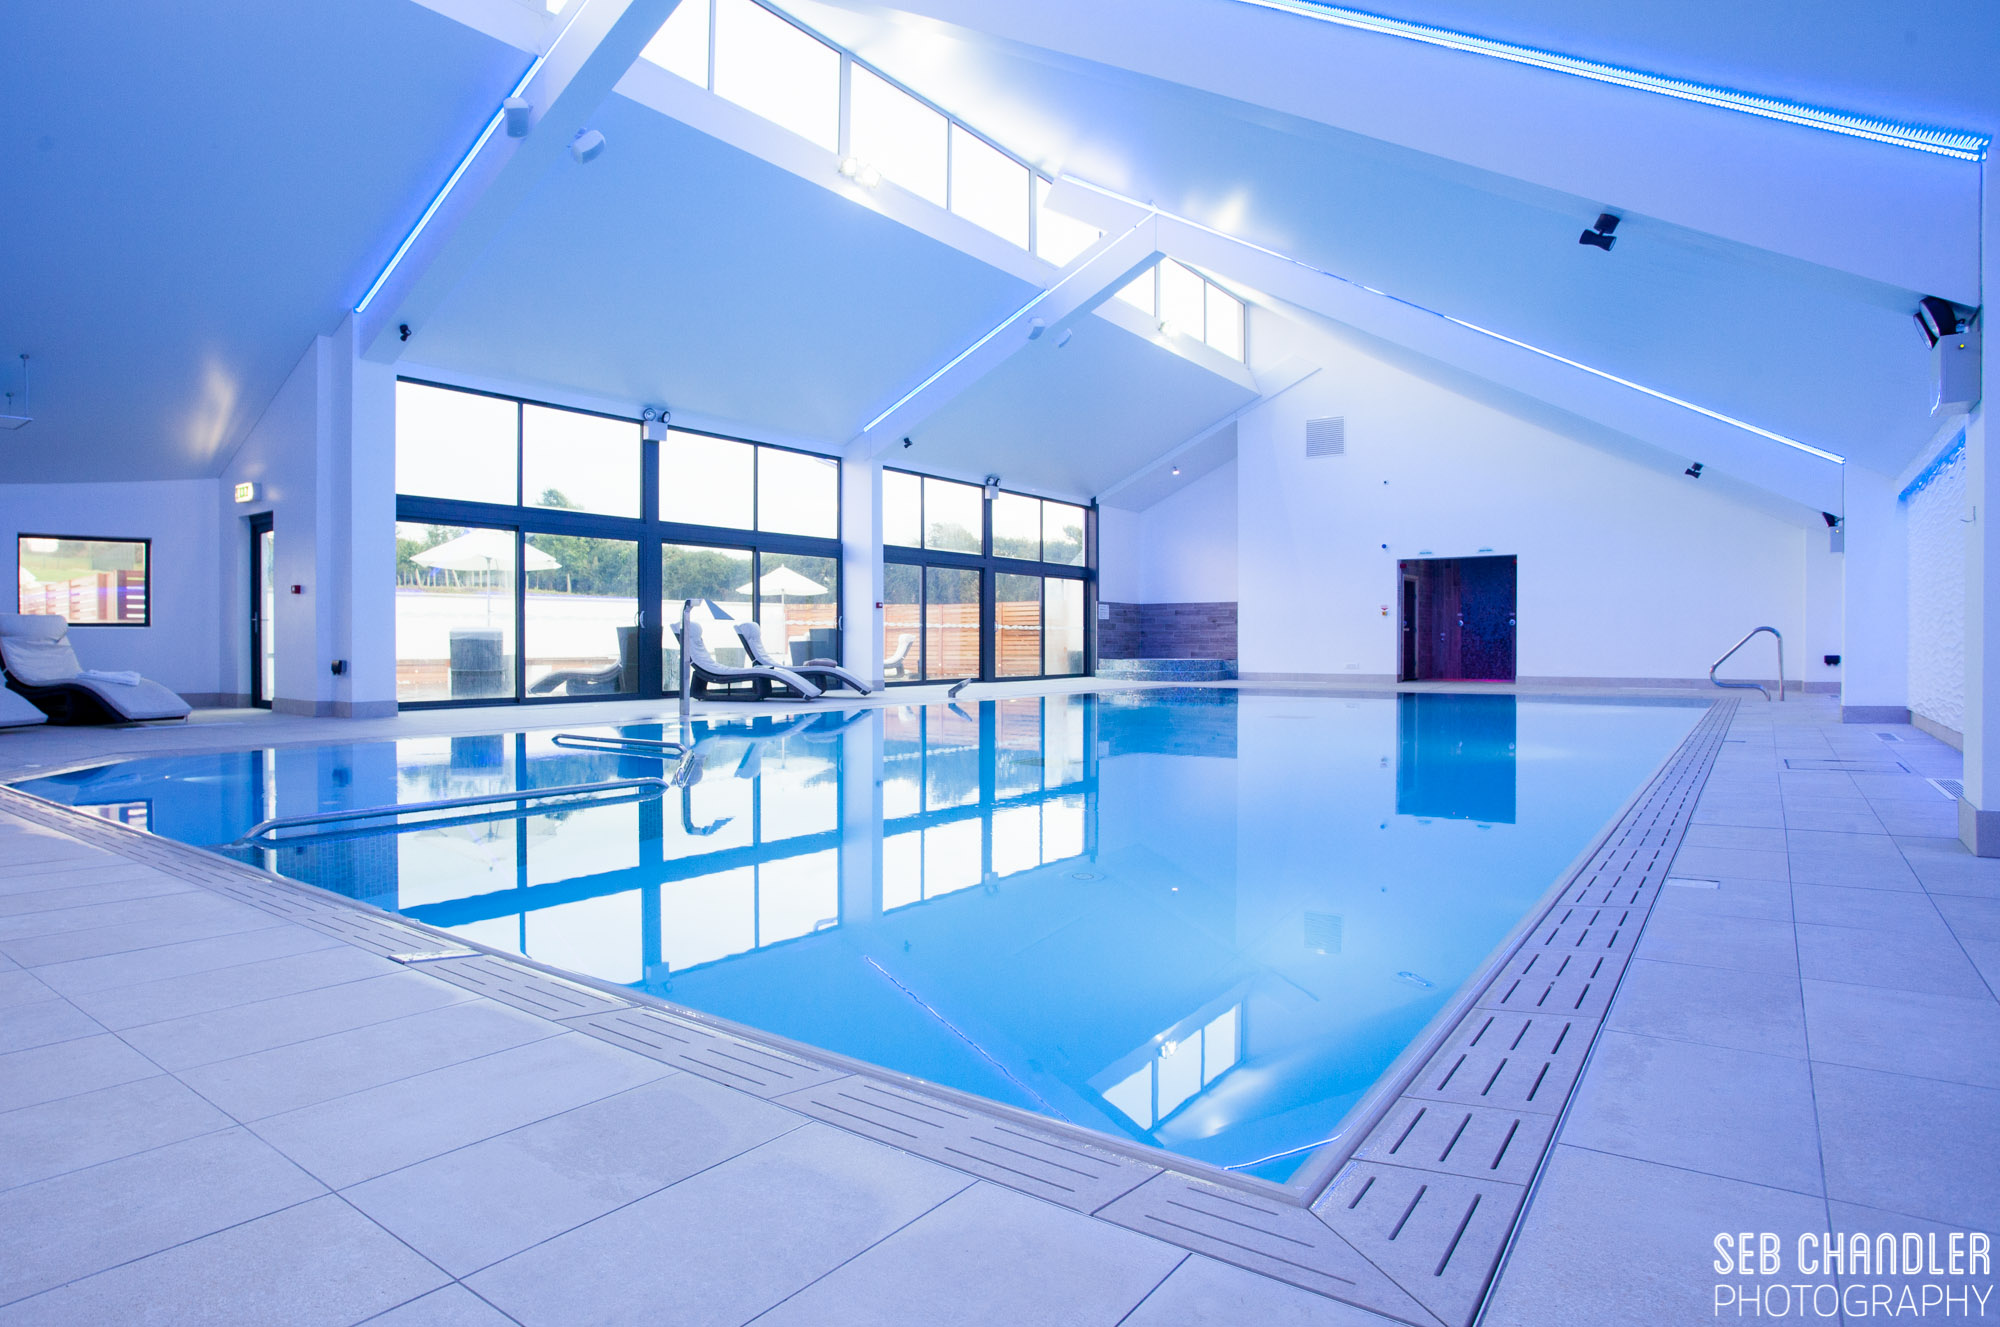 Cornwall Pools Swimming Pool Installations Cornwall Pools